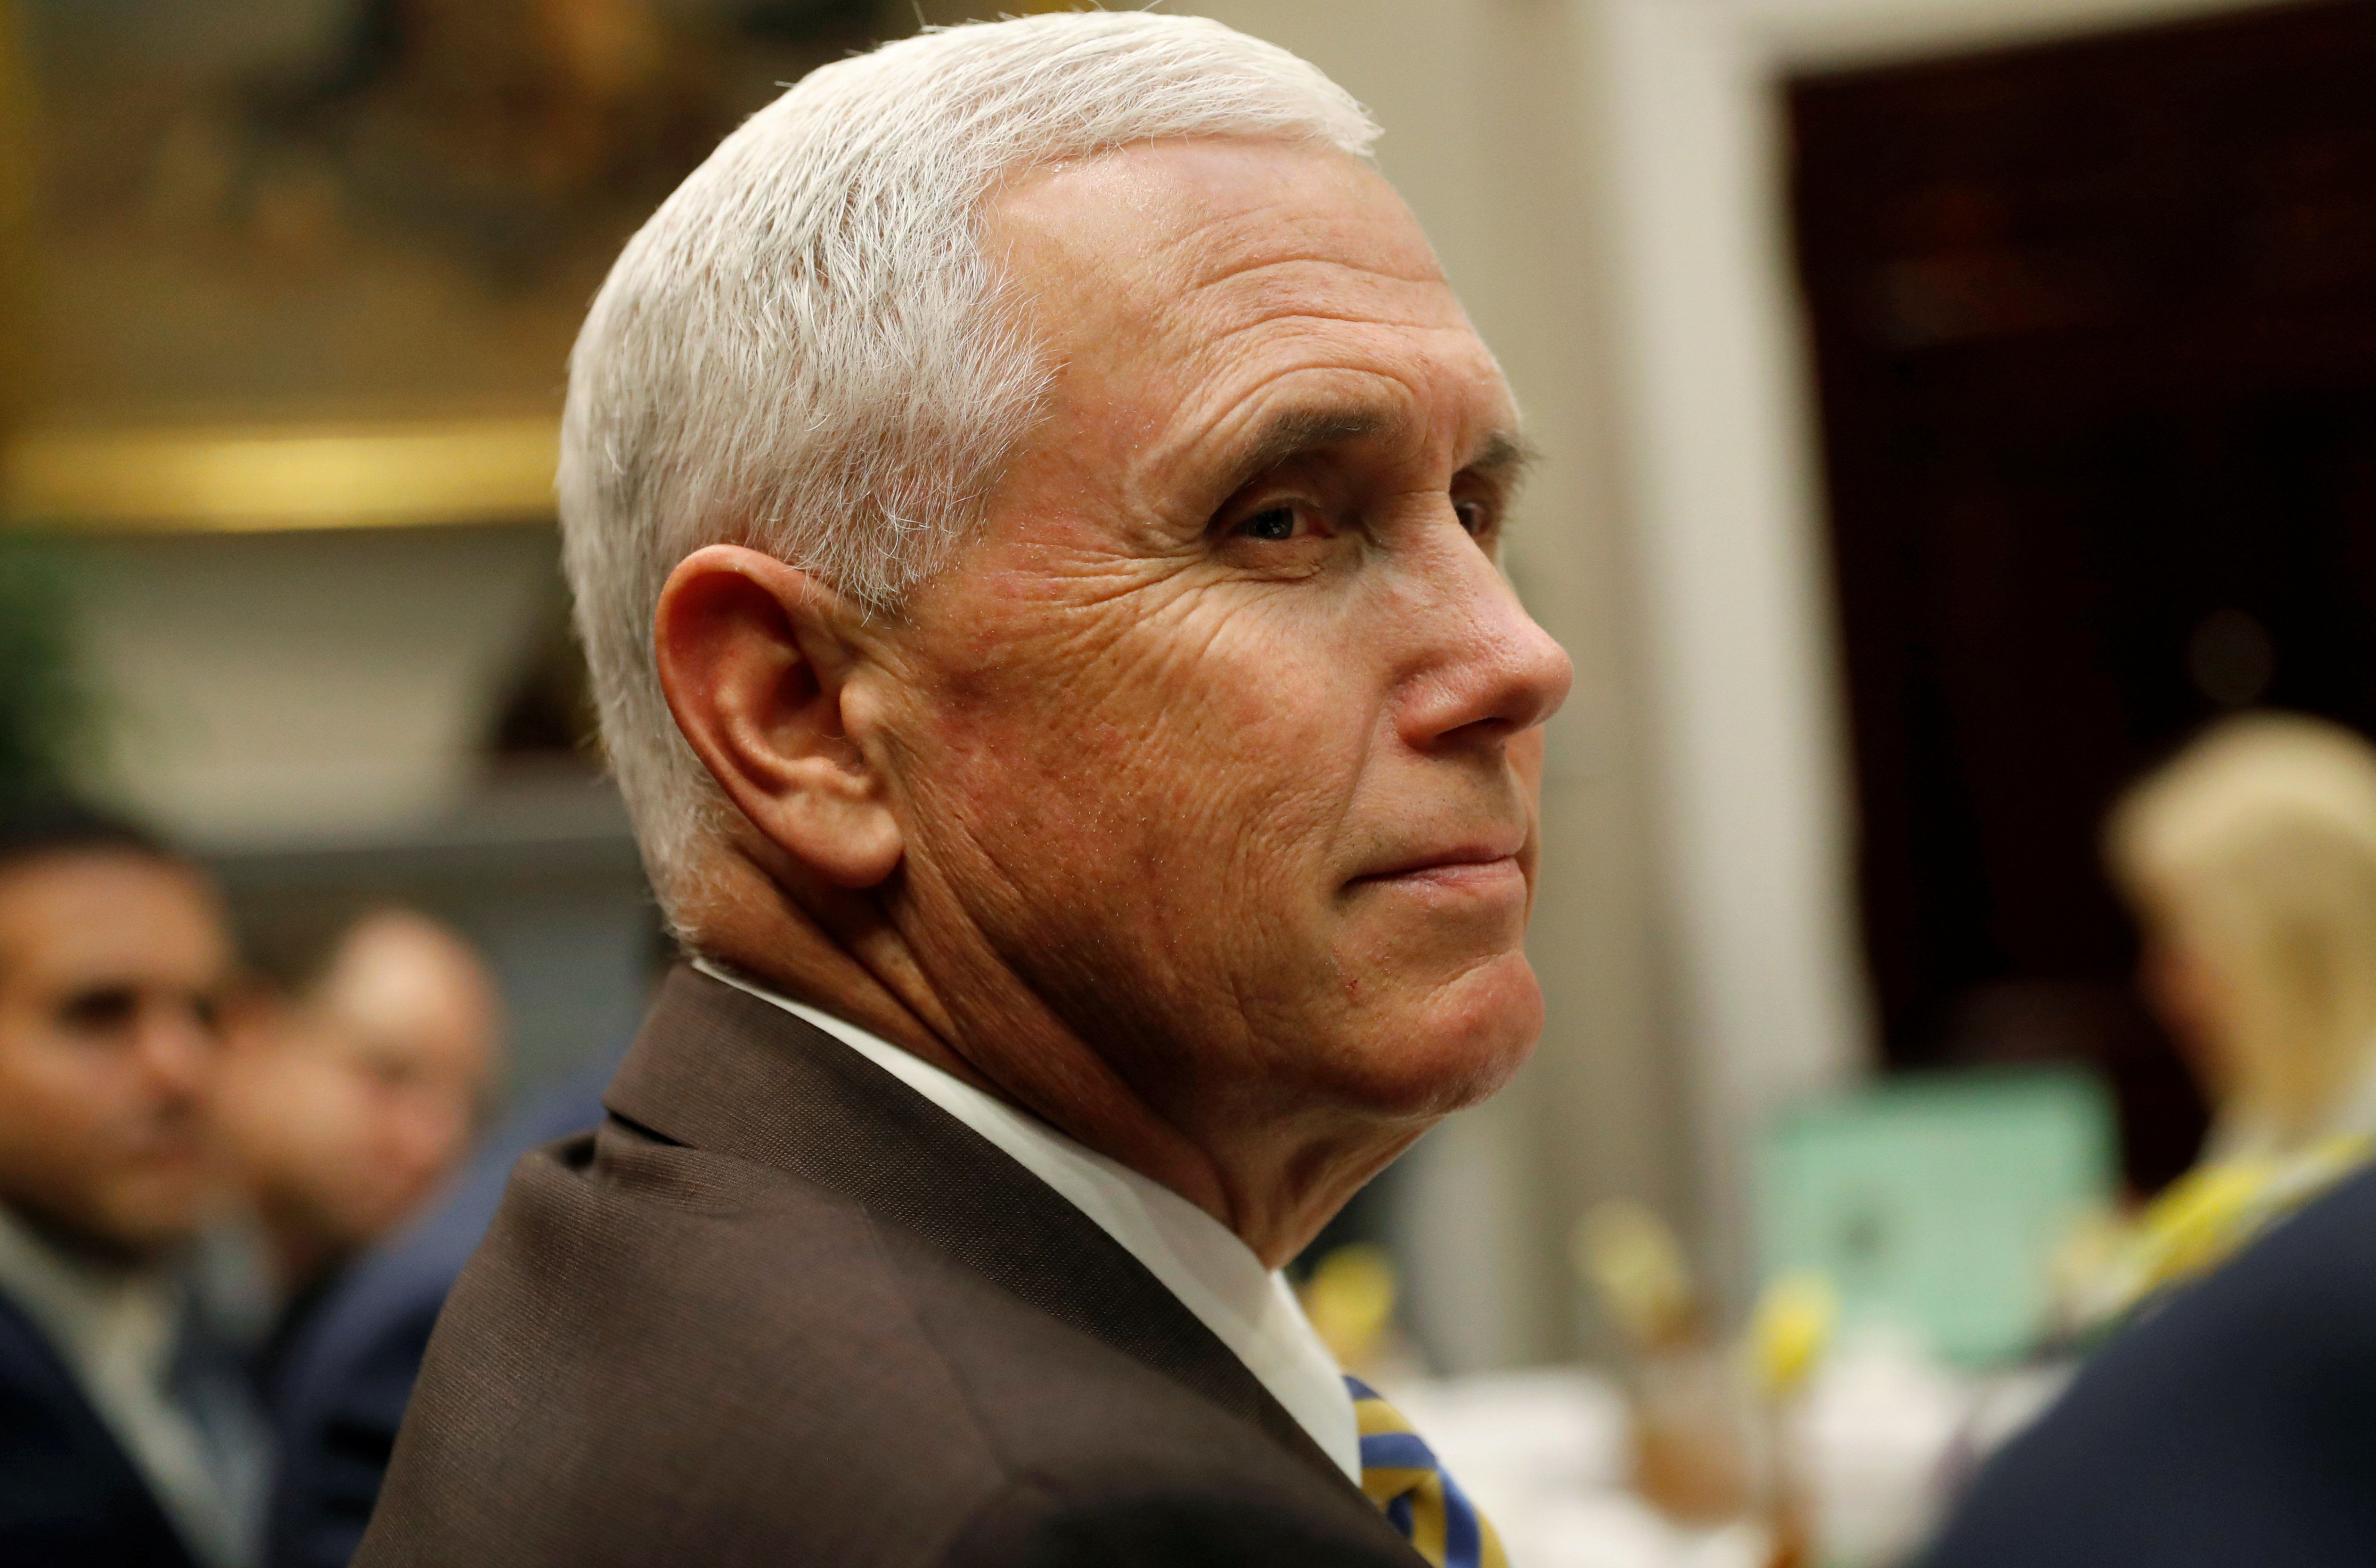 ?Vice President Mike Pence? listens during a working lunch with governors and U.S. President Donald Trump in the Roosevelt Room at the White House in Washington, U.S., June 21, 2018. REUTERS/Leah Millis